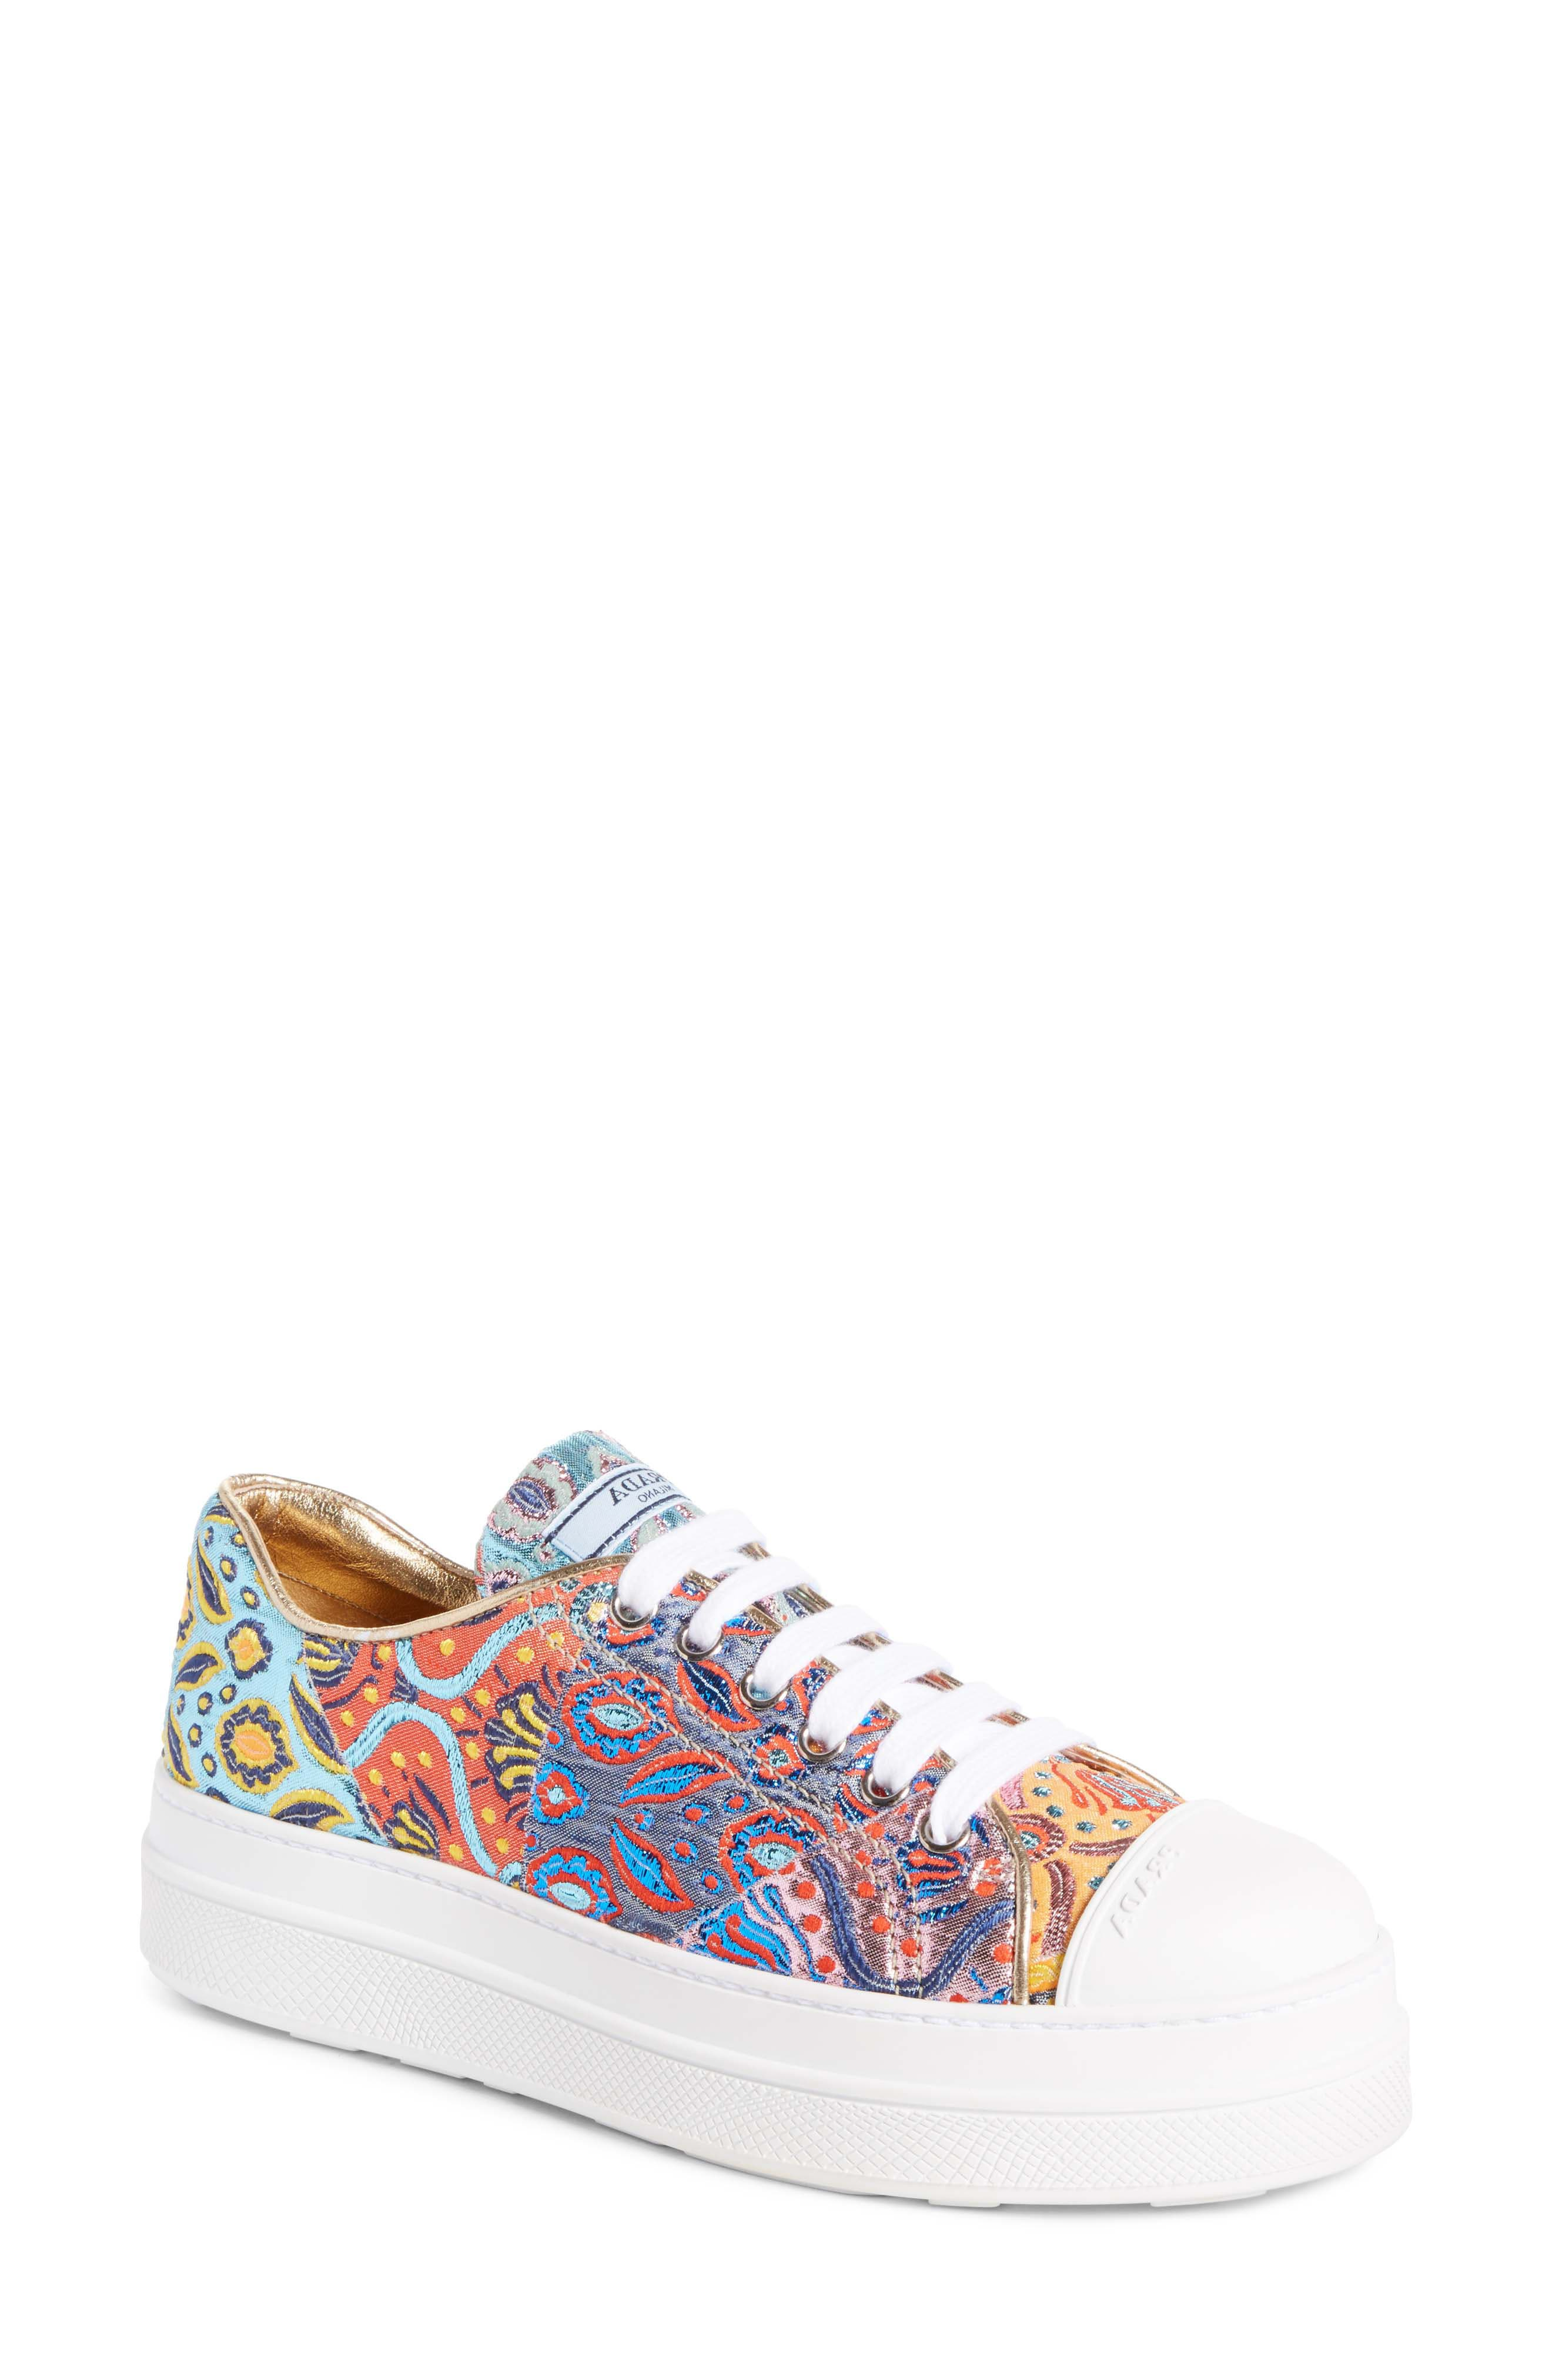 Patchwork Embroidered Platform Sneaker,                             Main thumbnail 1, color,                             101